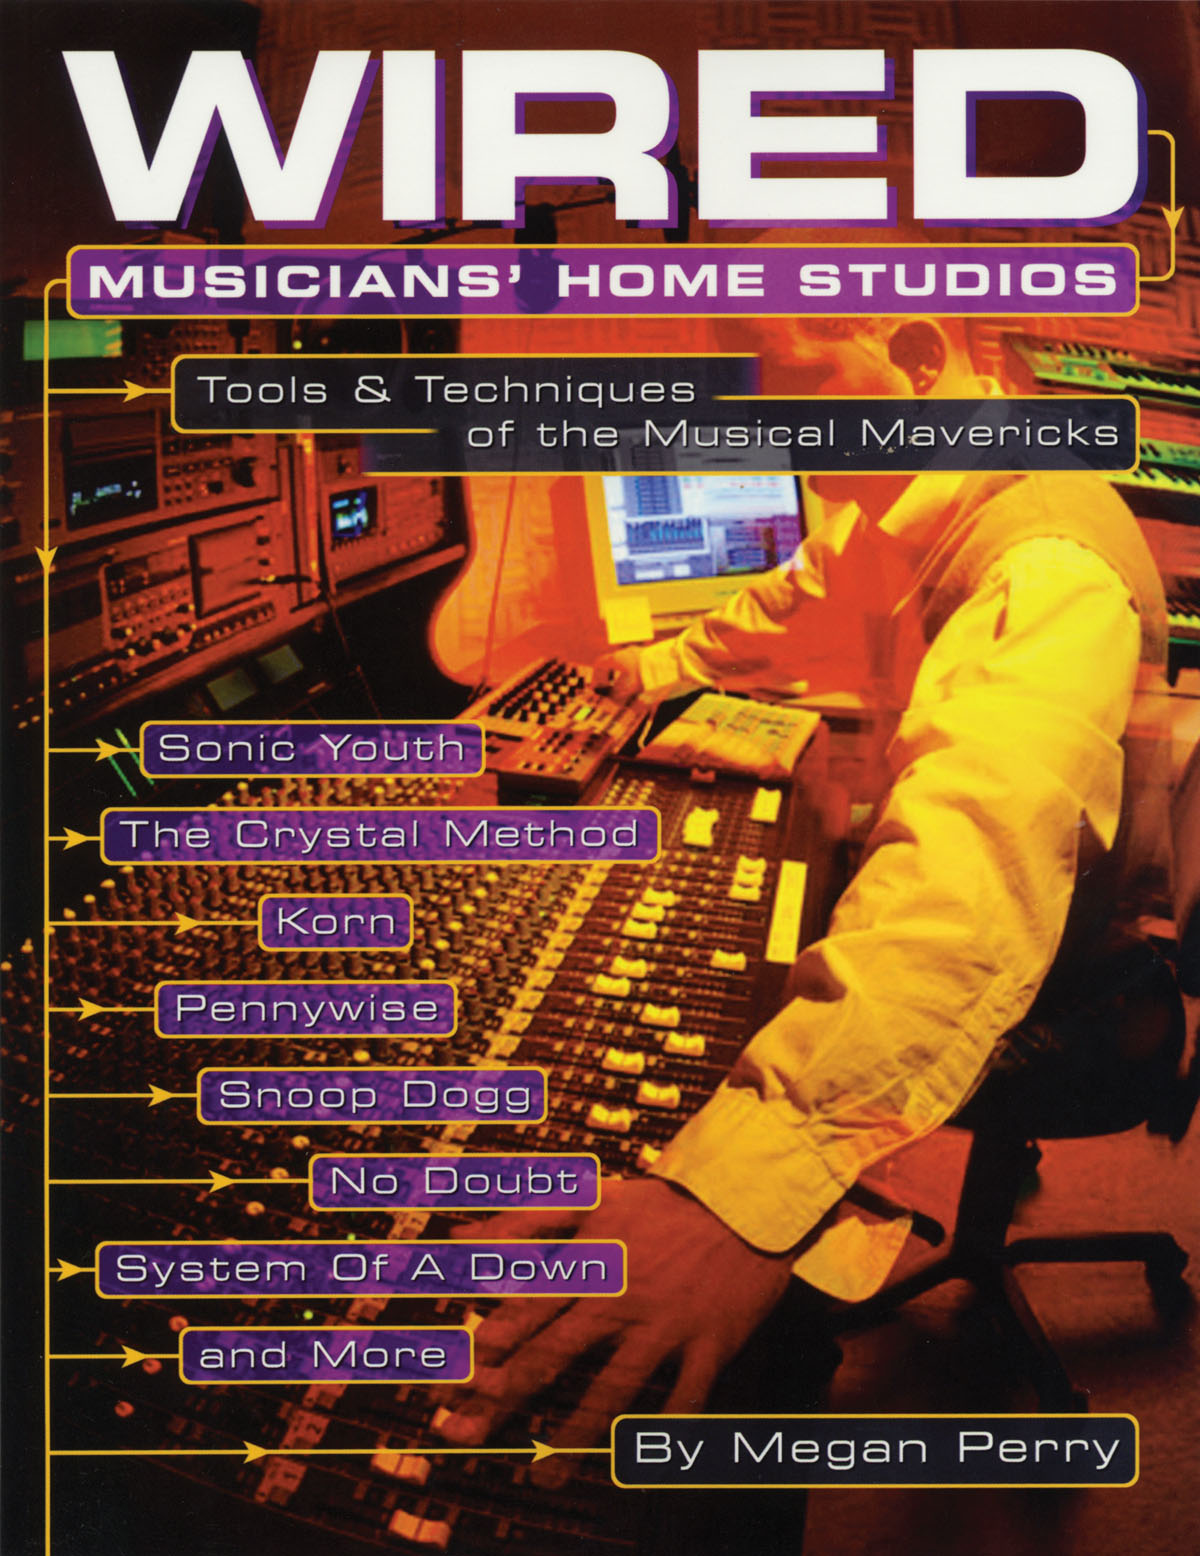 Wired - Musicians' Home Studios: Reference Books